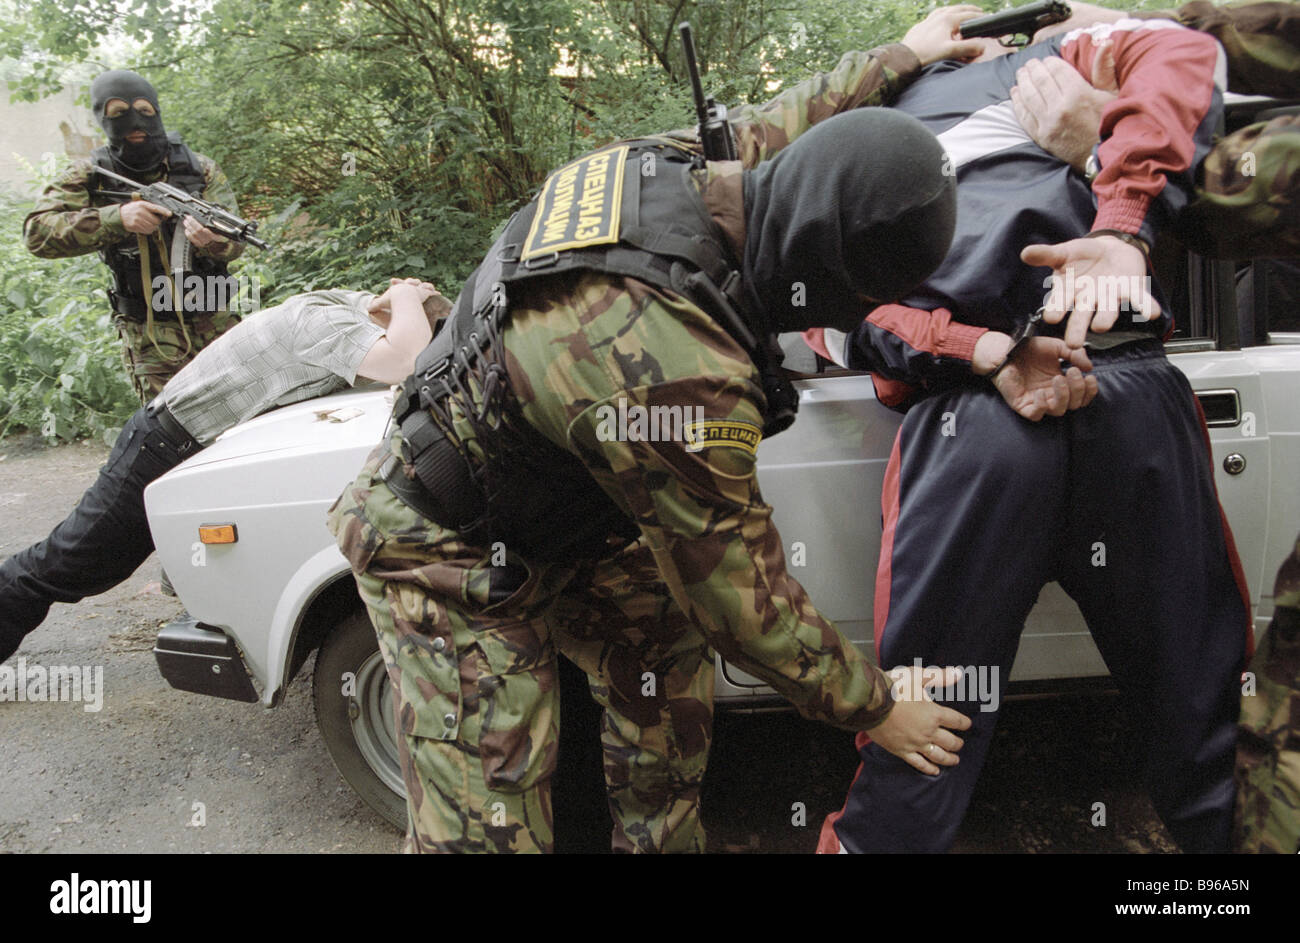 Drug dealers being detained by operatives of the Kaluga regional department of the Federal Agency for Controlling - Stock Image